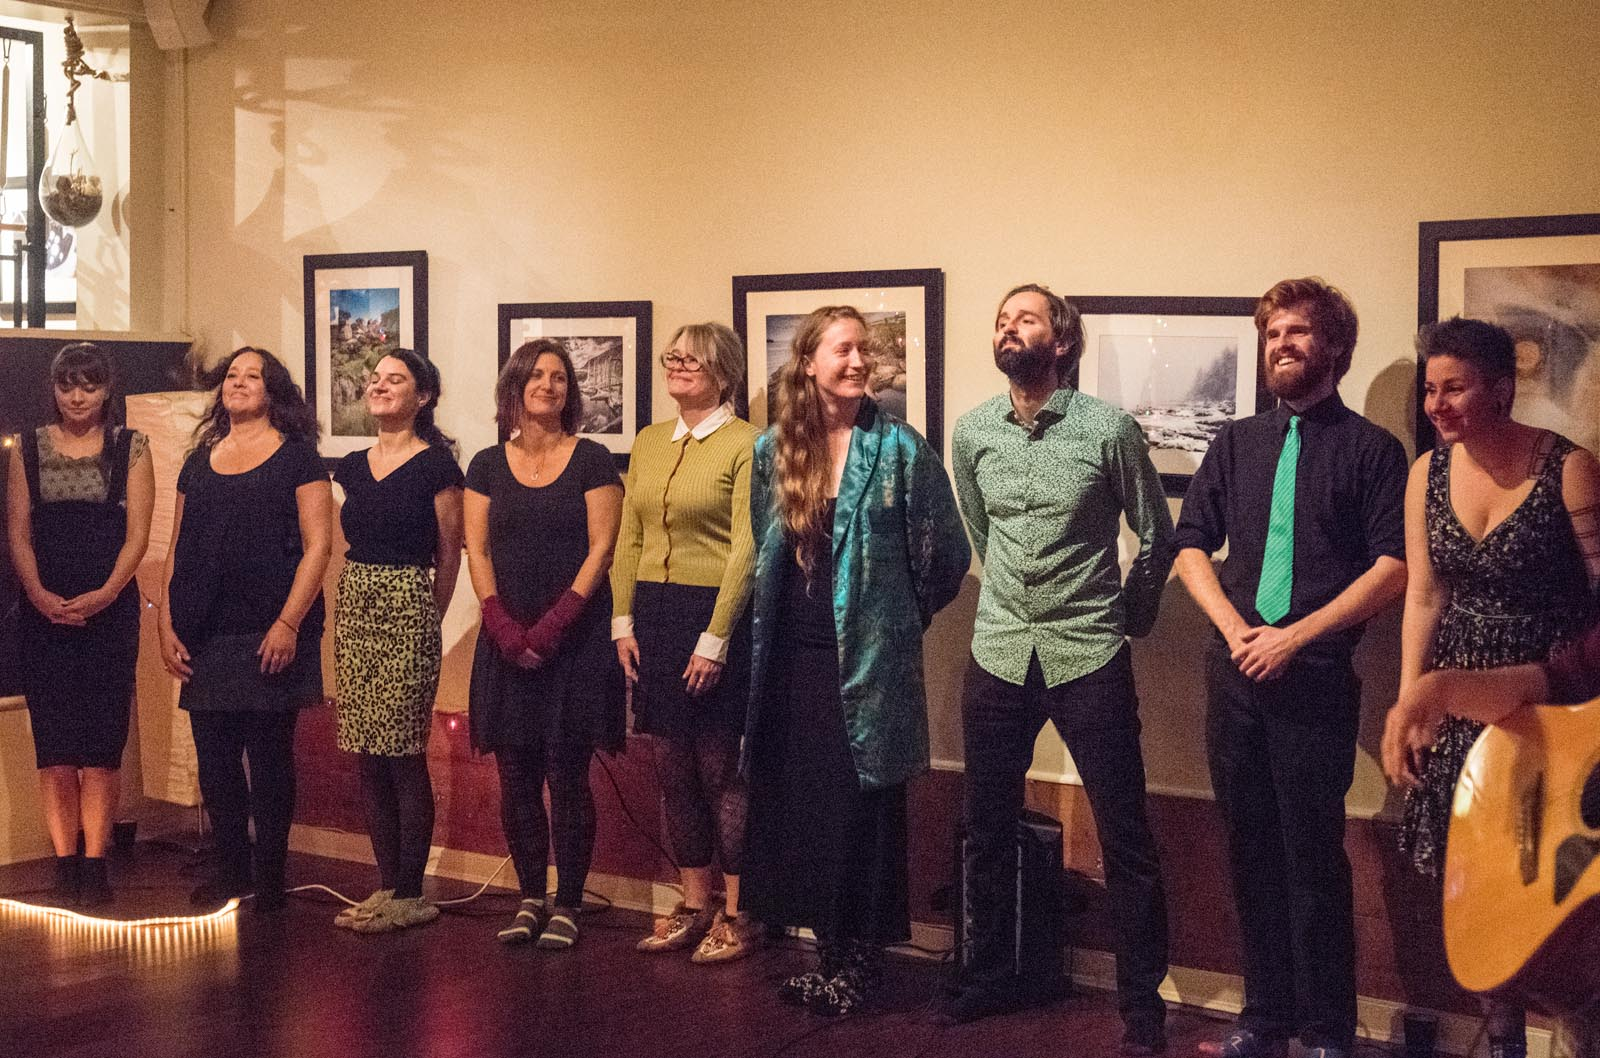 Rain Coast Choir performing at Full Circle Studio for the Wet Winter Showcase, Dec. 9th